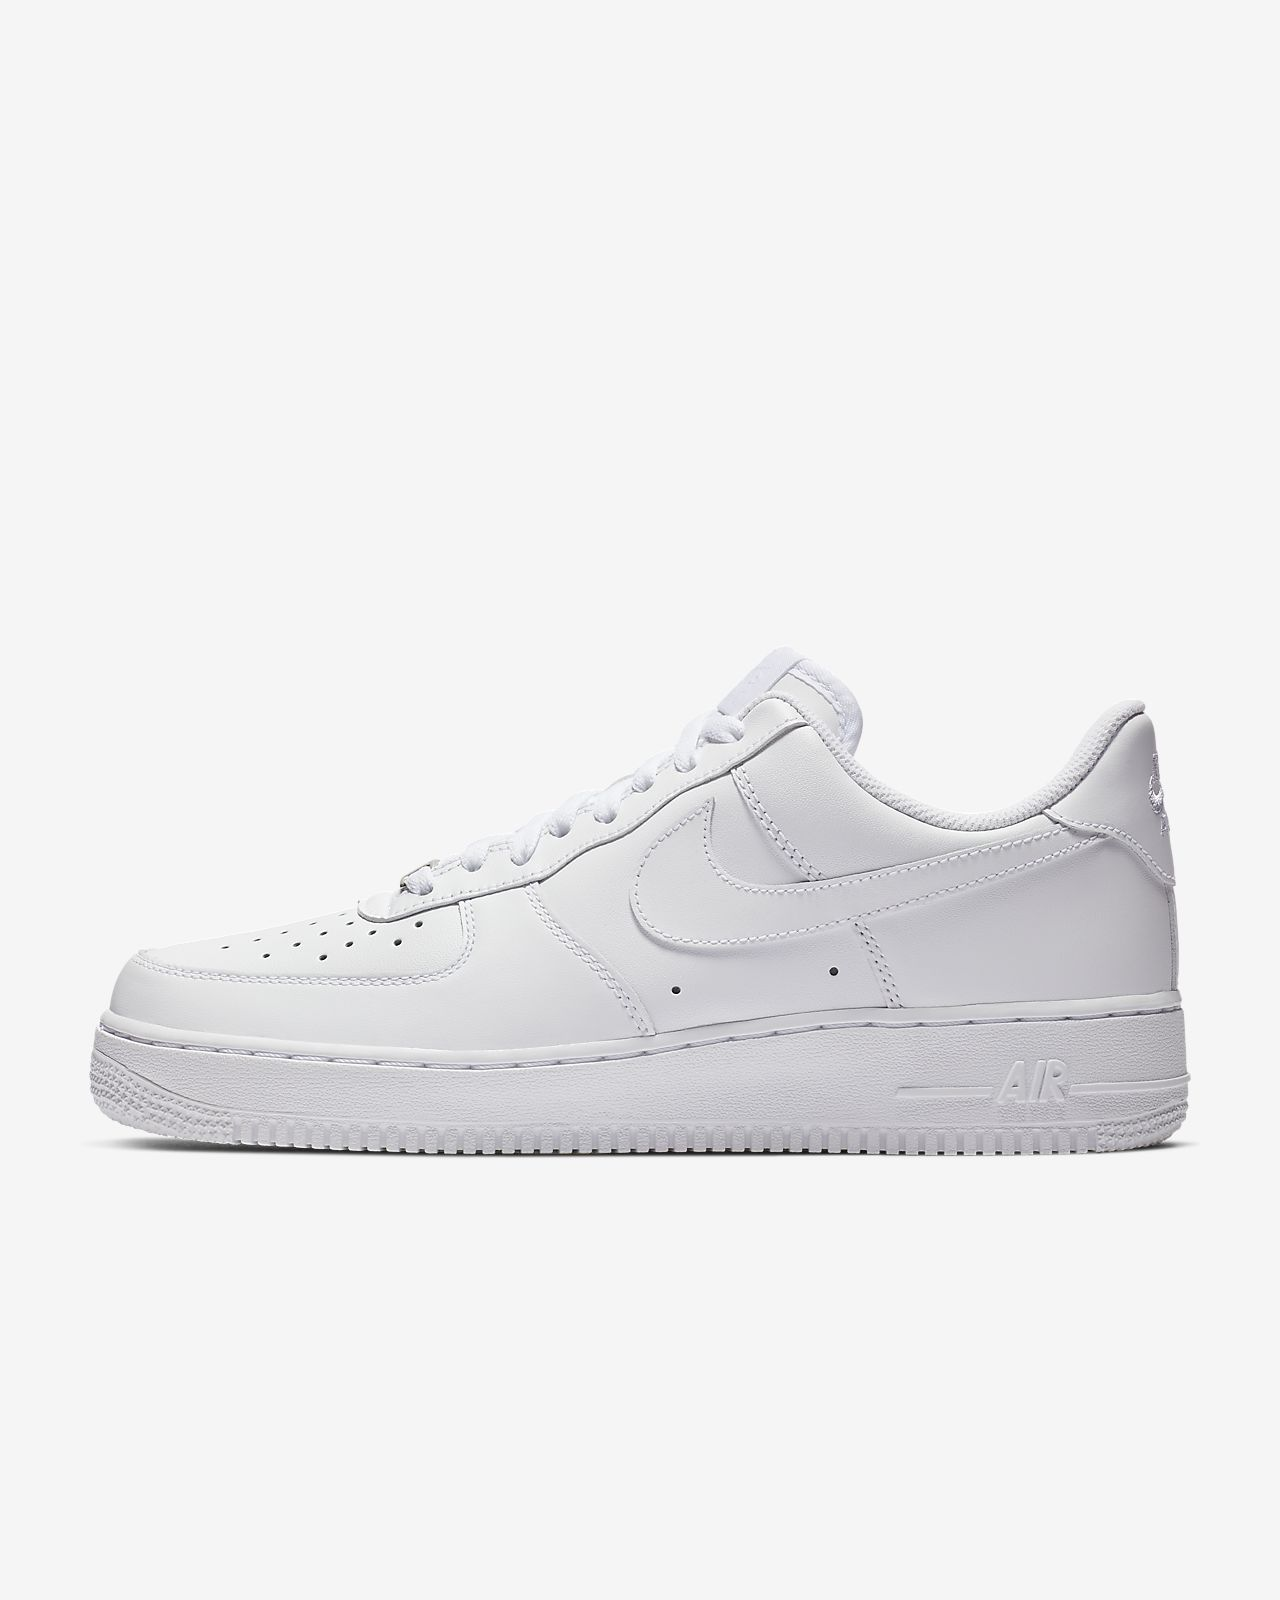 reputable site e0dcd ca170 ... Nike Air Force 1  07 Damenschuh